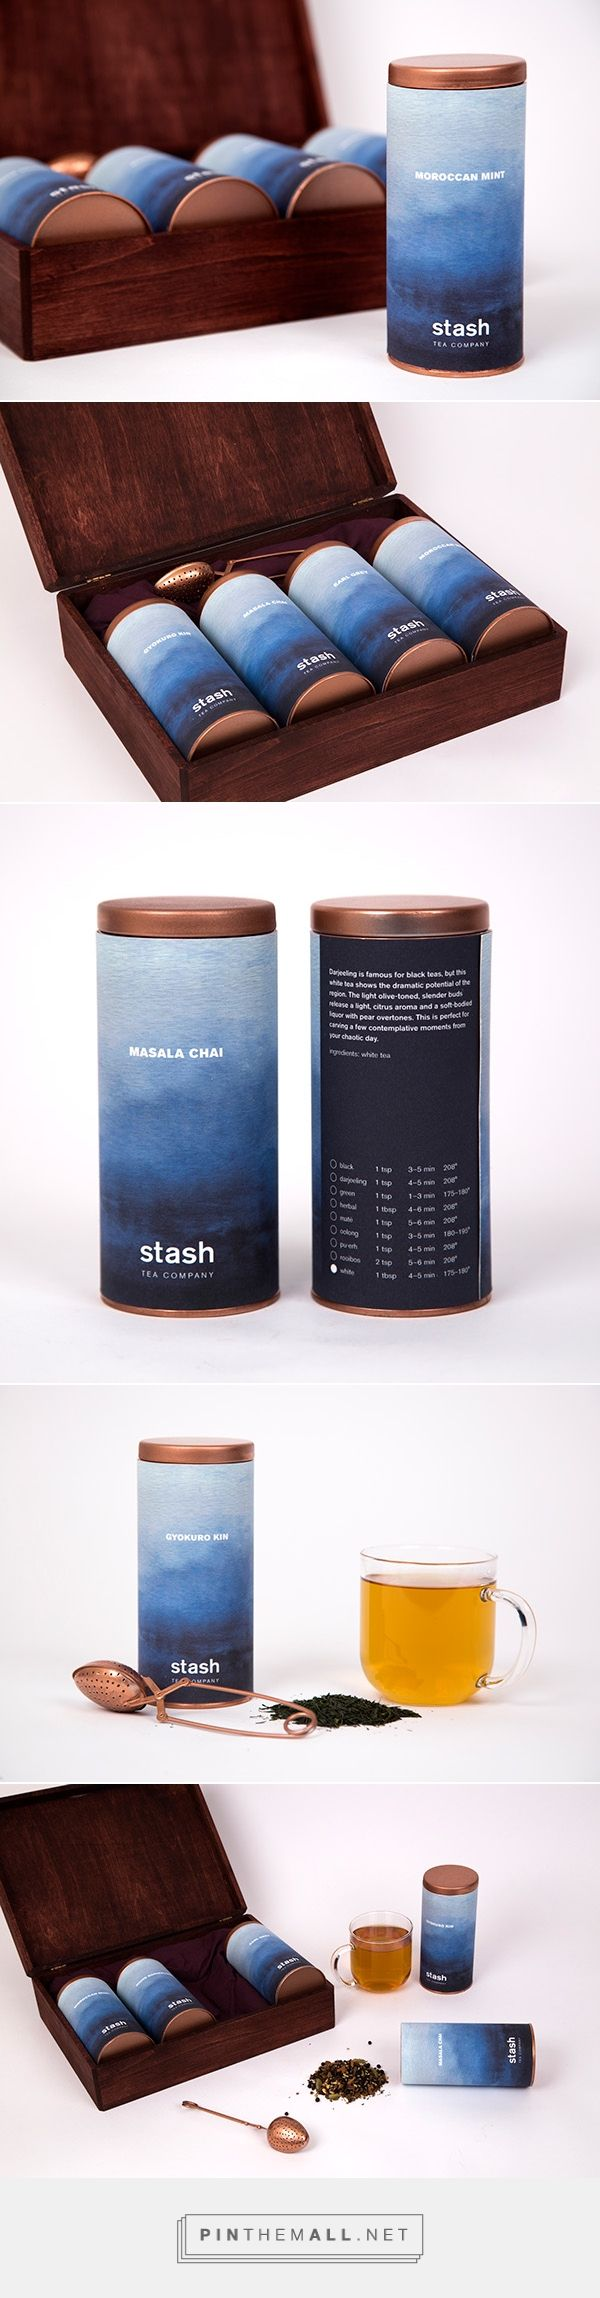 Stash Tea Company on Behance... - a grouped images picture http://teds-woodworking.digimkts.com/  awesome i want to make one myself carpinteria woodworking  Stash Tea Company Brilliant Packaging Design examples for your inspiration this week // Introducing moirestudiosjkt a thriving website and graphic design studio. Feel Free to Follow us @moirestudiosjkt to see more #outstanding pins like this. #packaging #graphicDesign